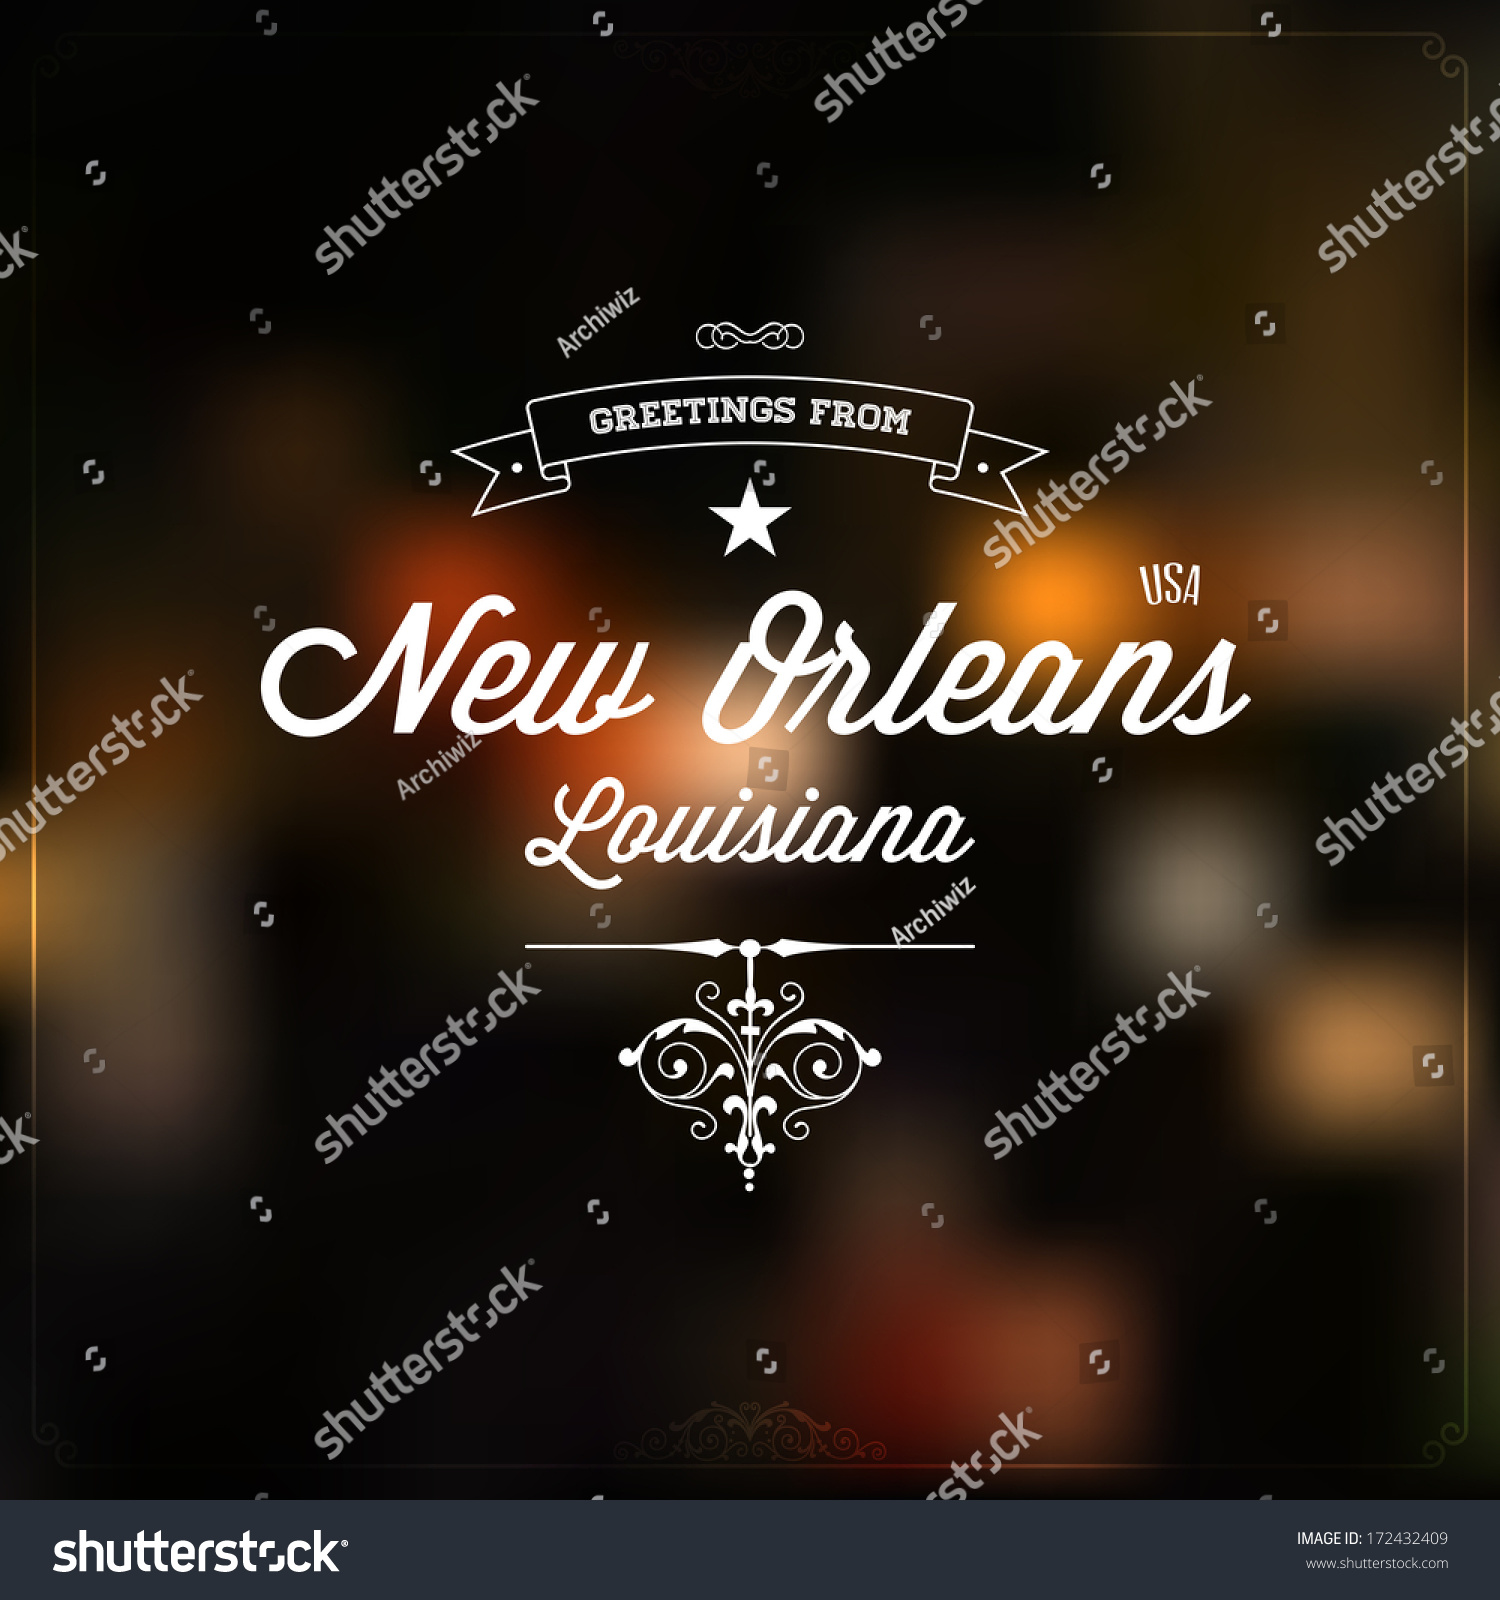 Retro typography vintage touristic greeting label stock vector retro typography vintage touristic greeting label on blurry background greetings from new orleans m4hsunfo